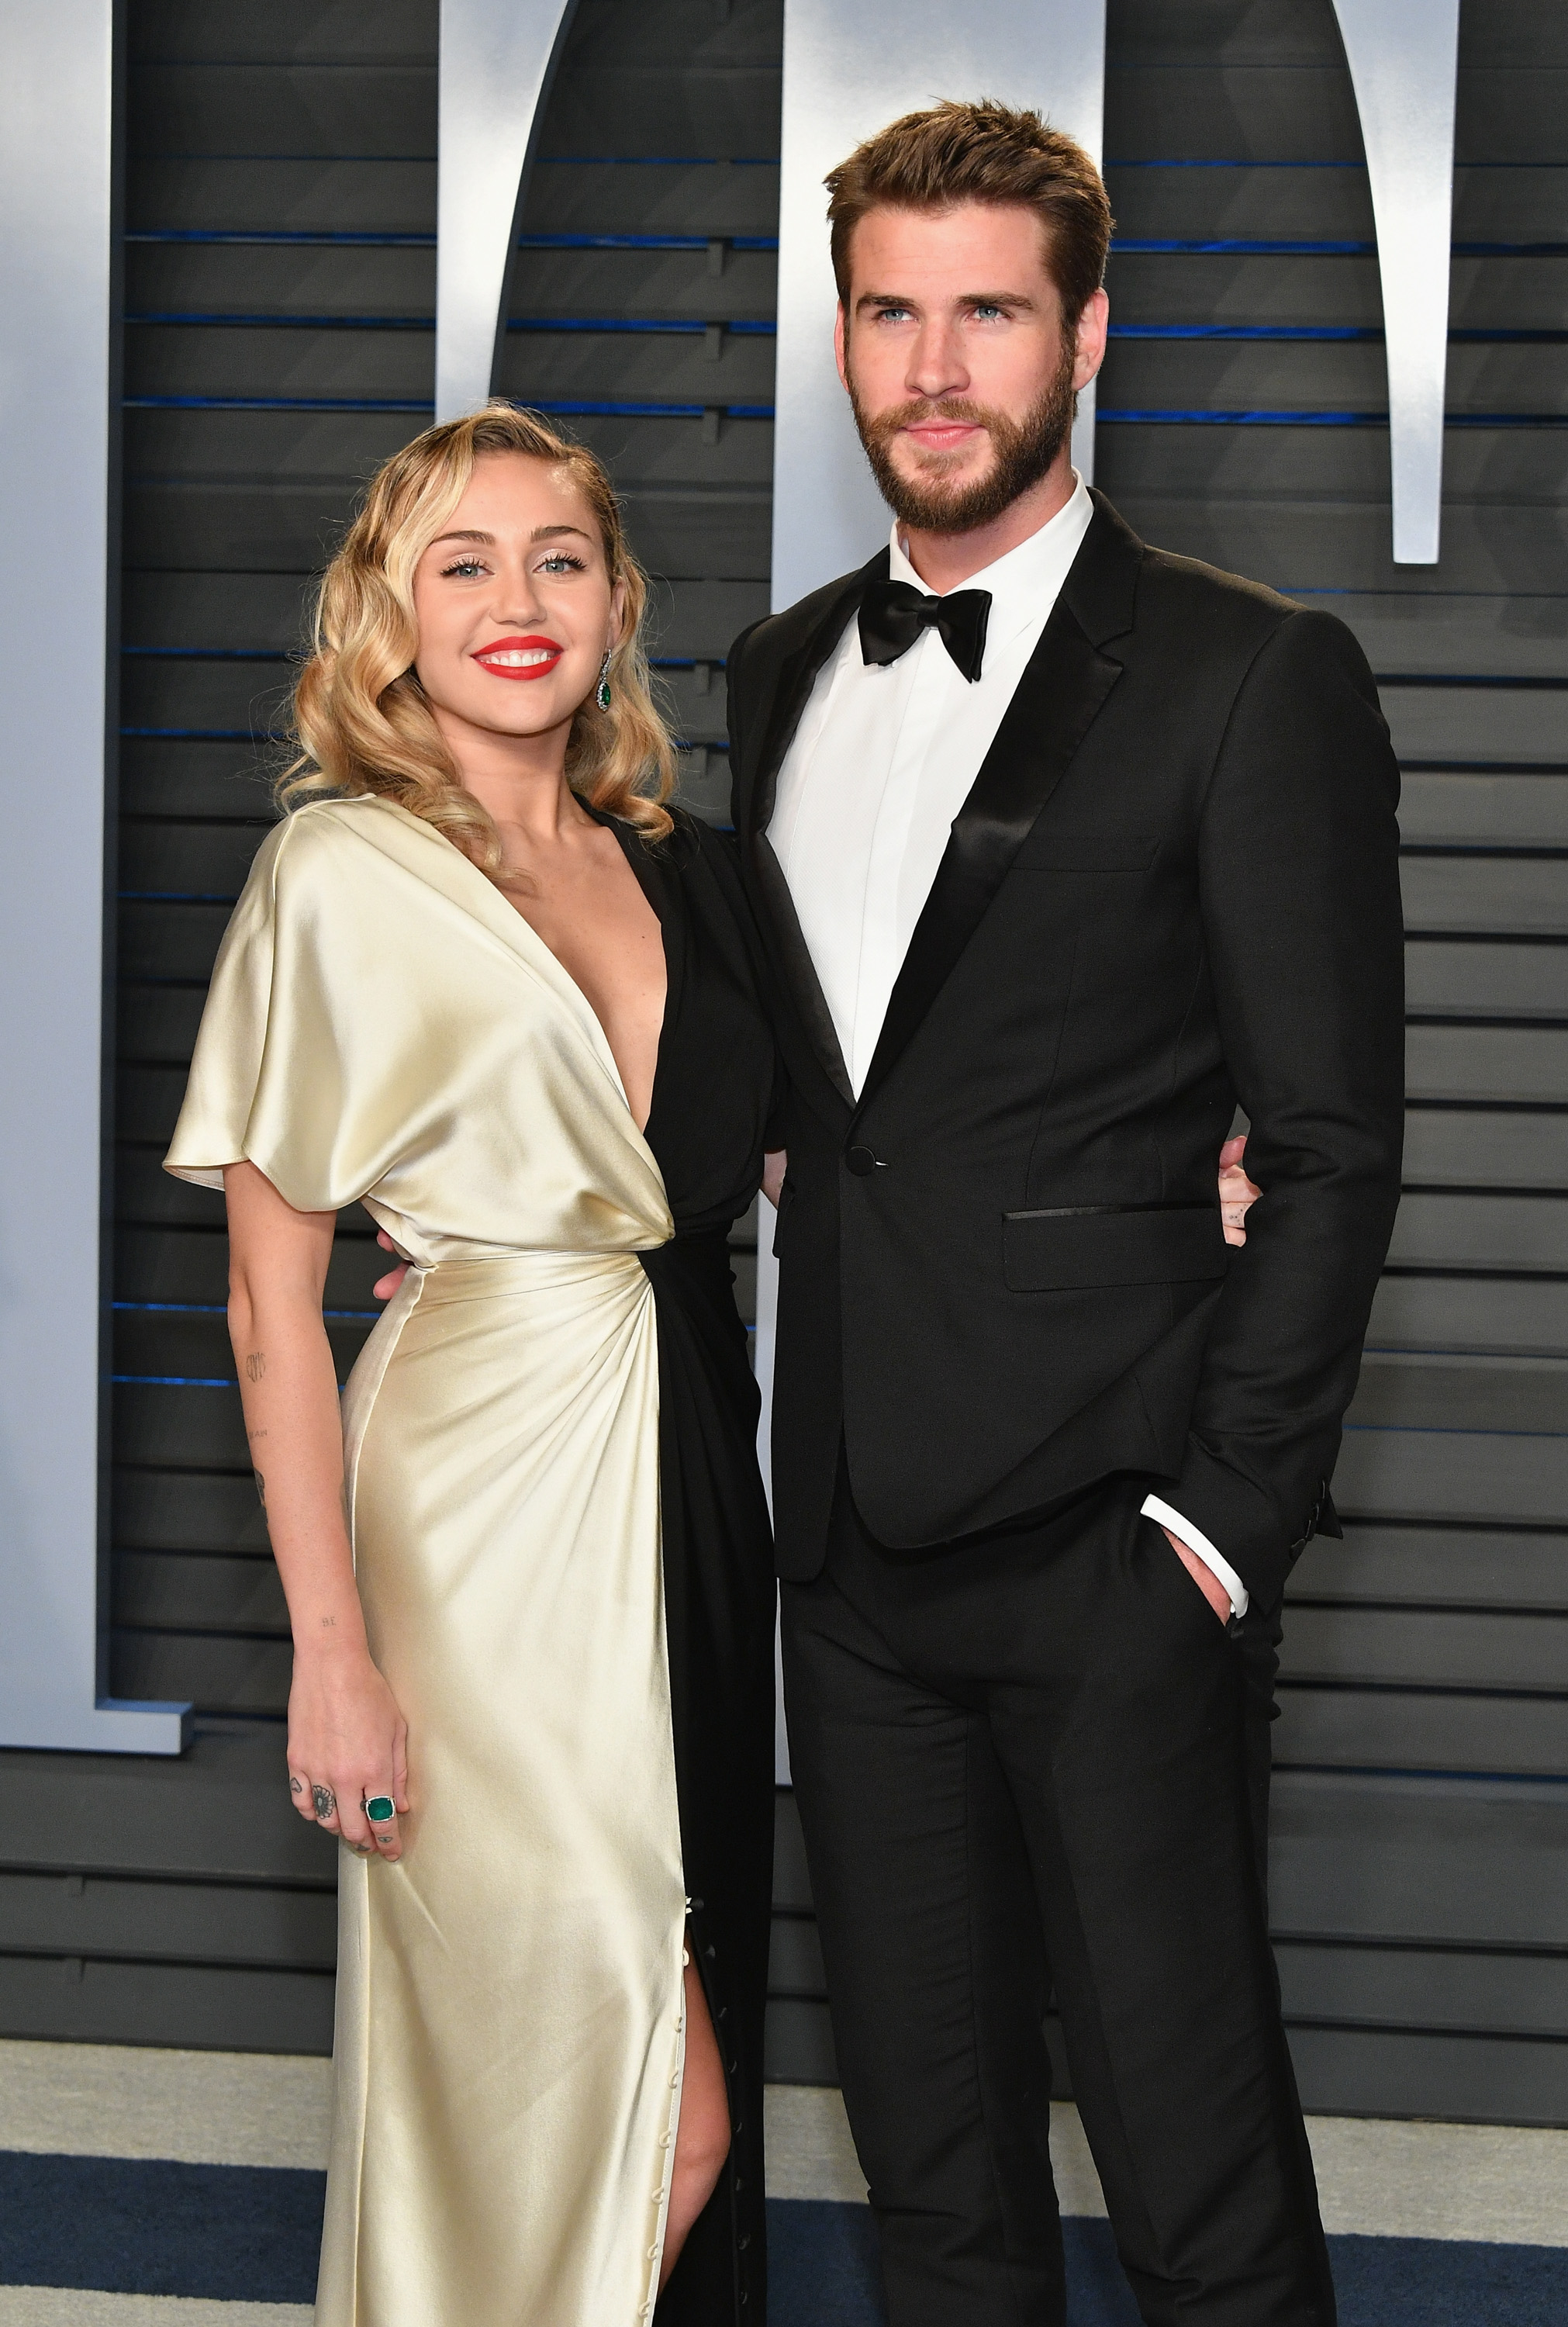 Miley Cyrus (L) and Liam Hemsworth attend the 2018 Vanity Fair Oscar Party hosted by Radhika Jones at Wallis Annenberg Center for the Performing Arts on March 4, 2018 in Beverly Hills, California.